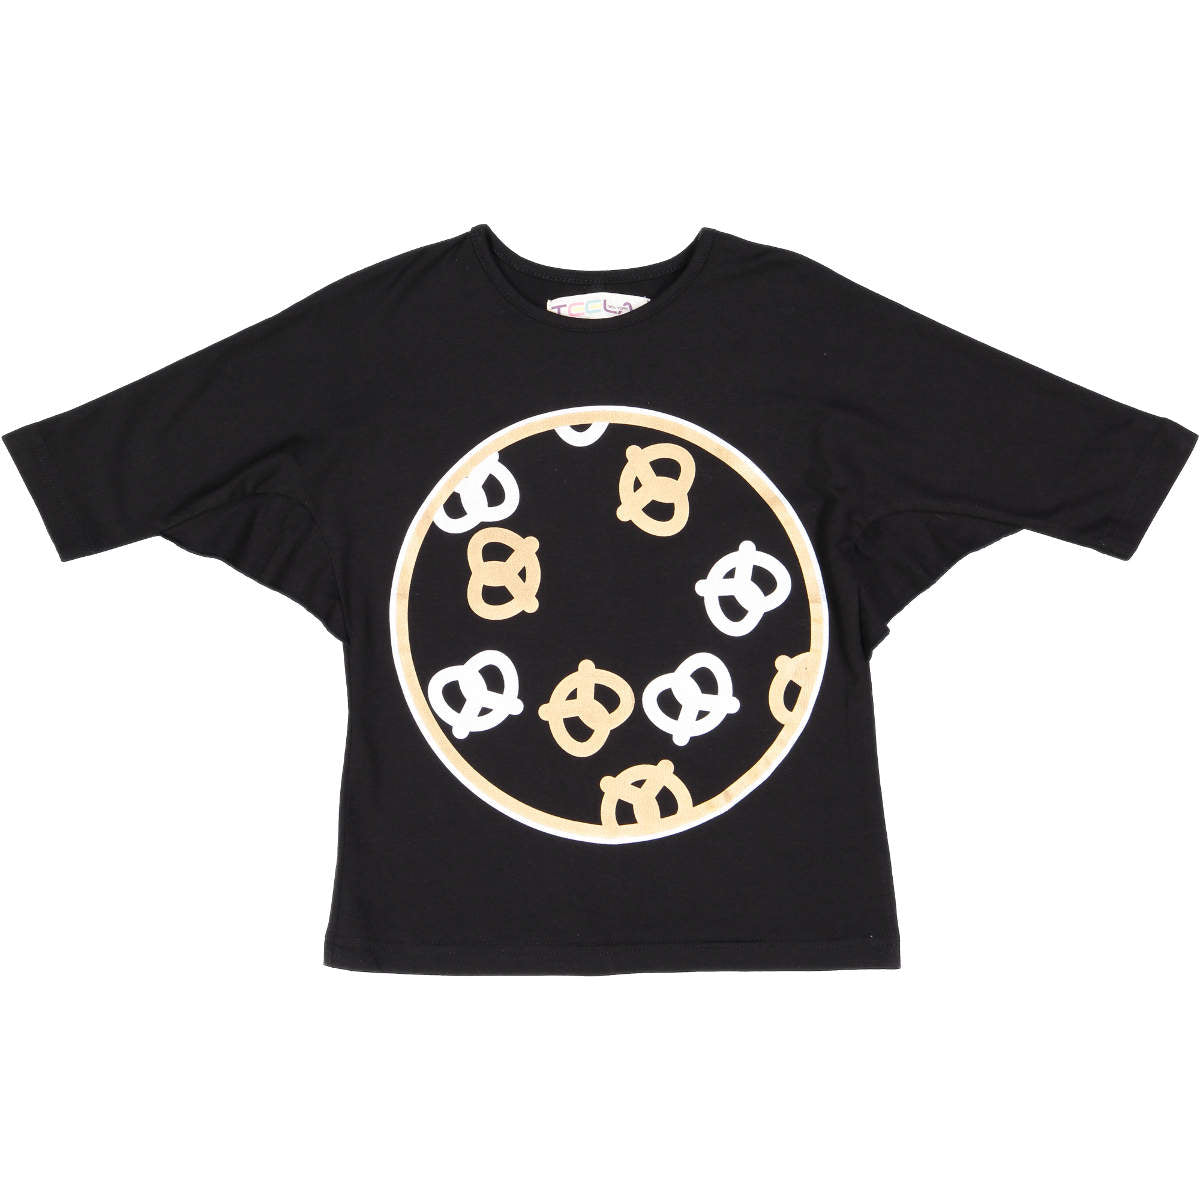 Teela Girls' Black Pretzel Print Tee